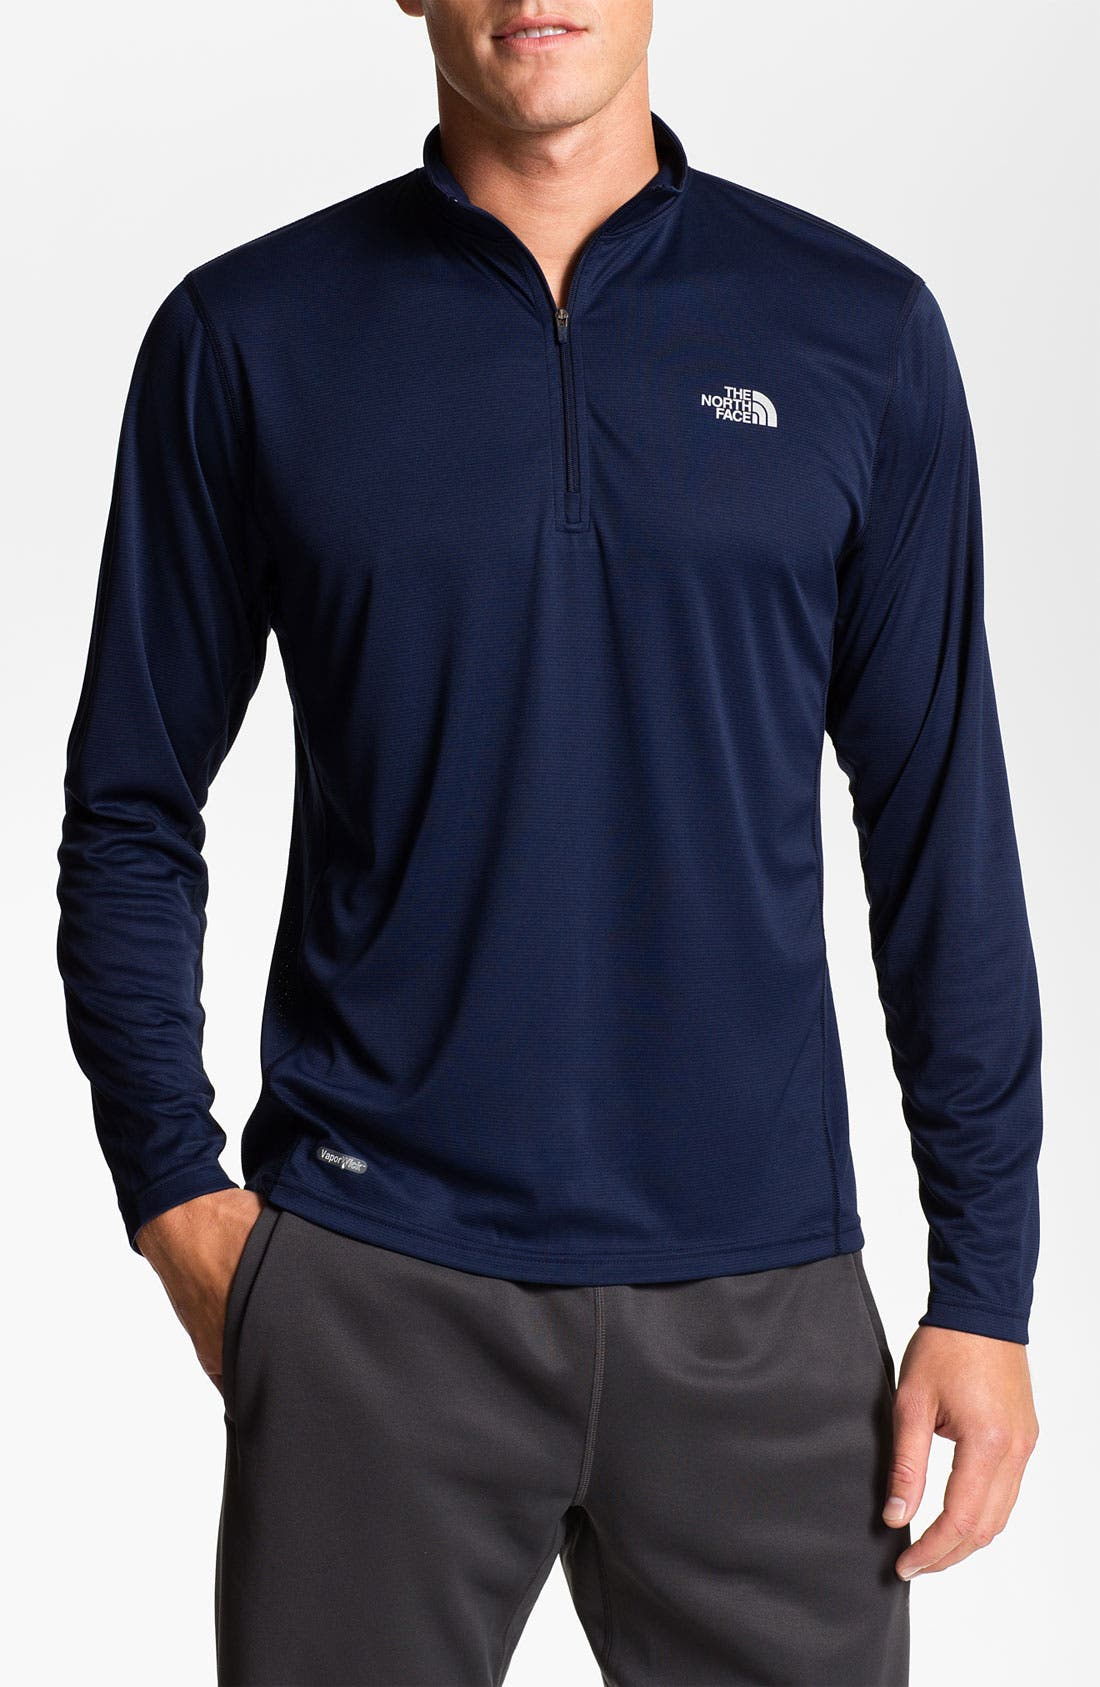 Alternate Image 1 Selected - The North Face 'Flex' Quarter Zip Jacket